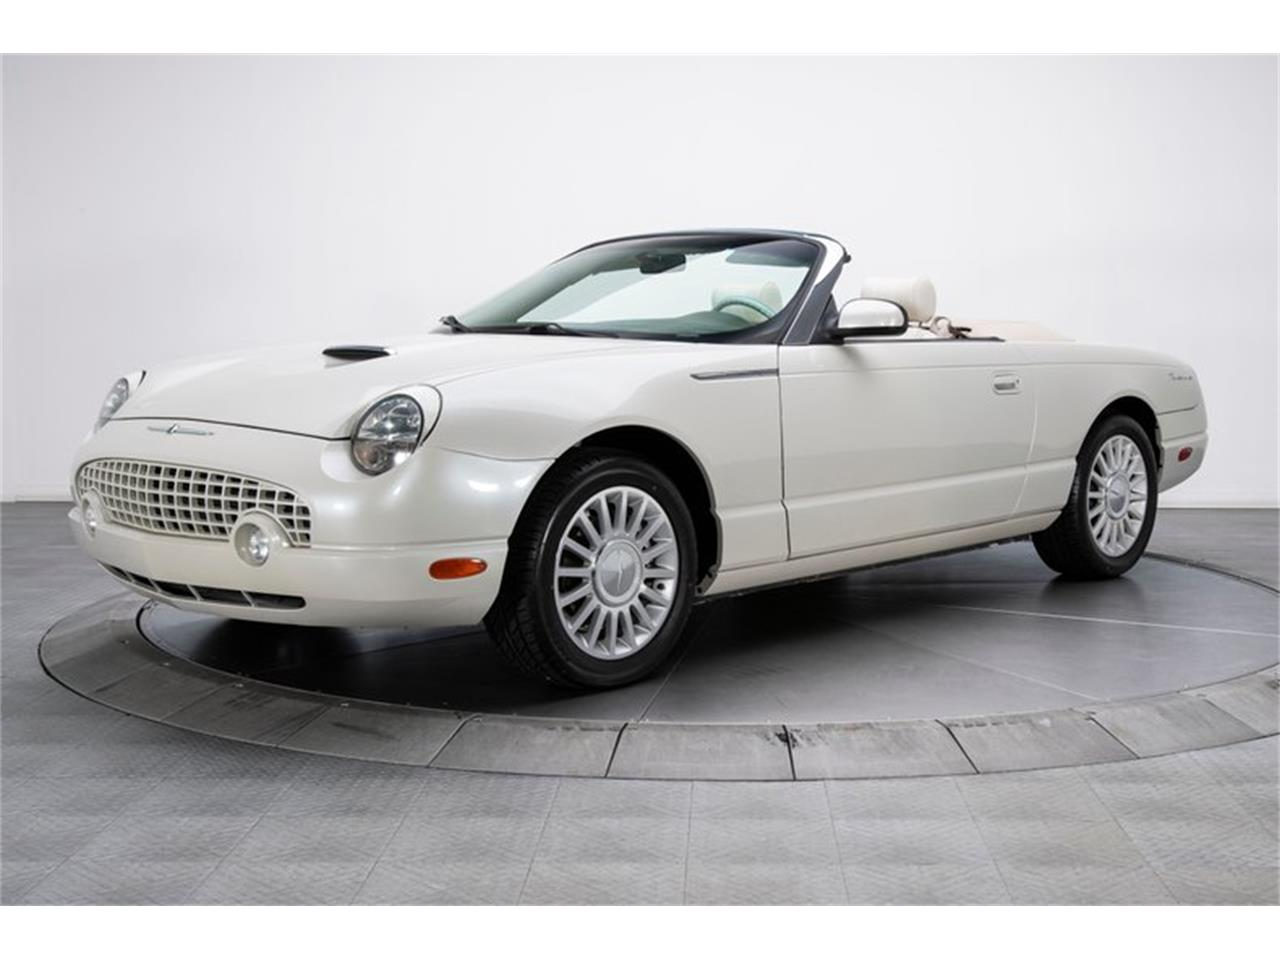 2005 Ford Thunderbird (CC-1380965) for sale in Charlotte, North Carolina